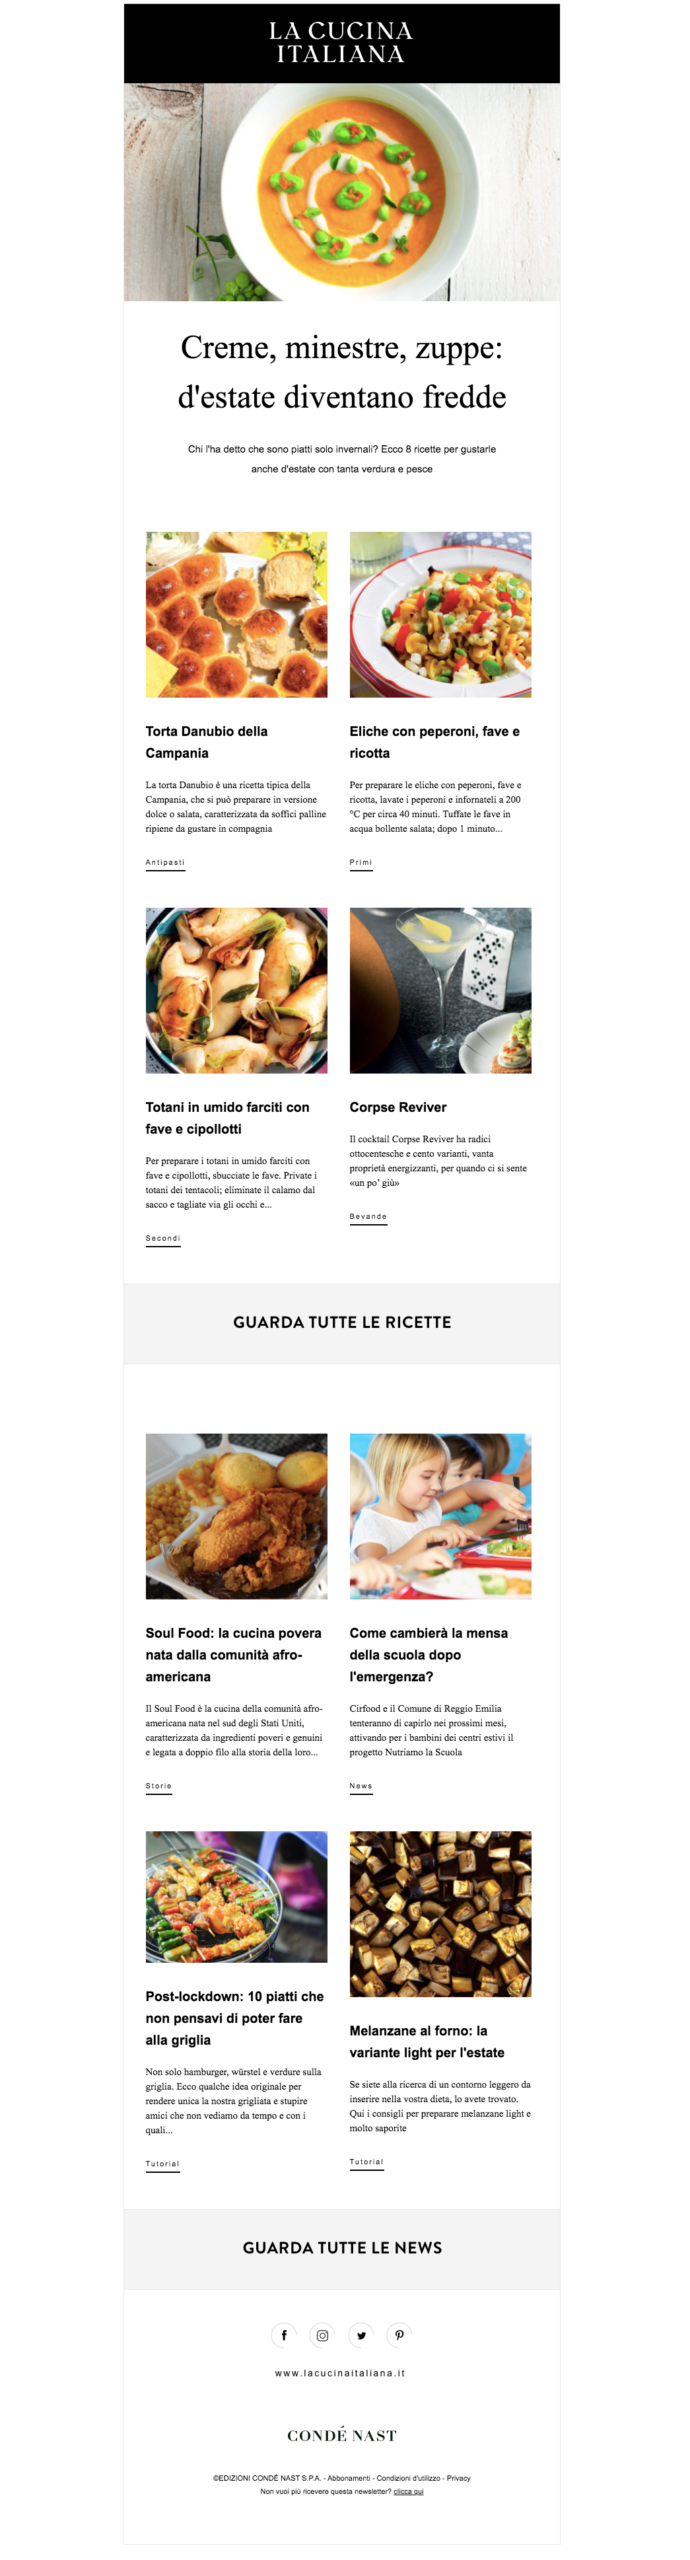 cucinaitaliana_newsletter